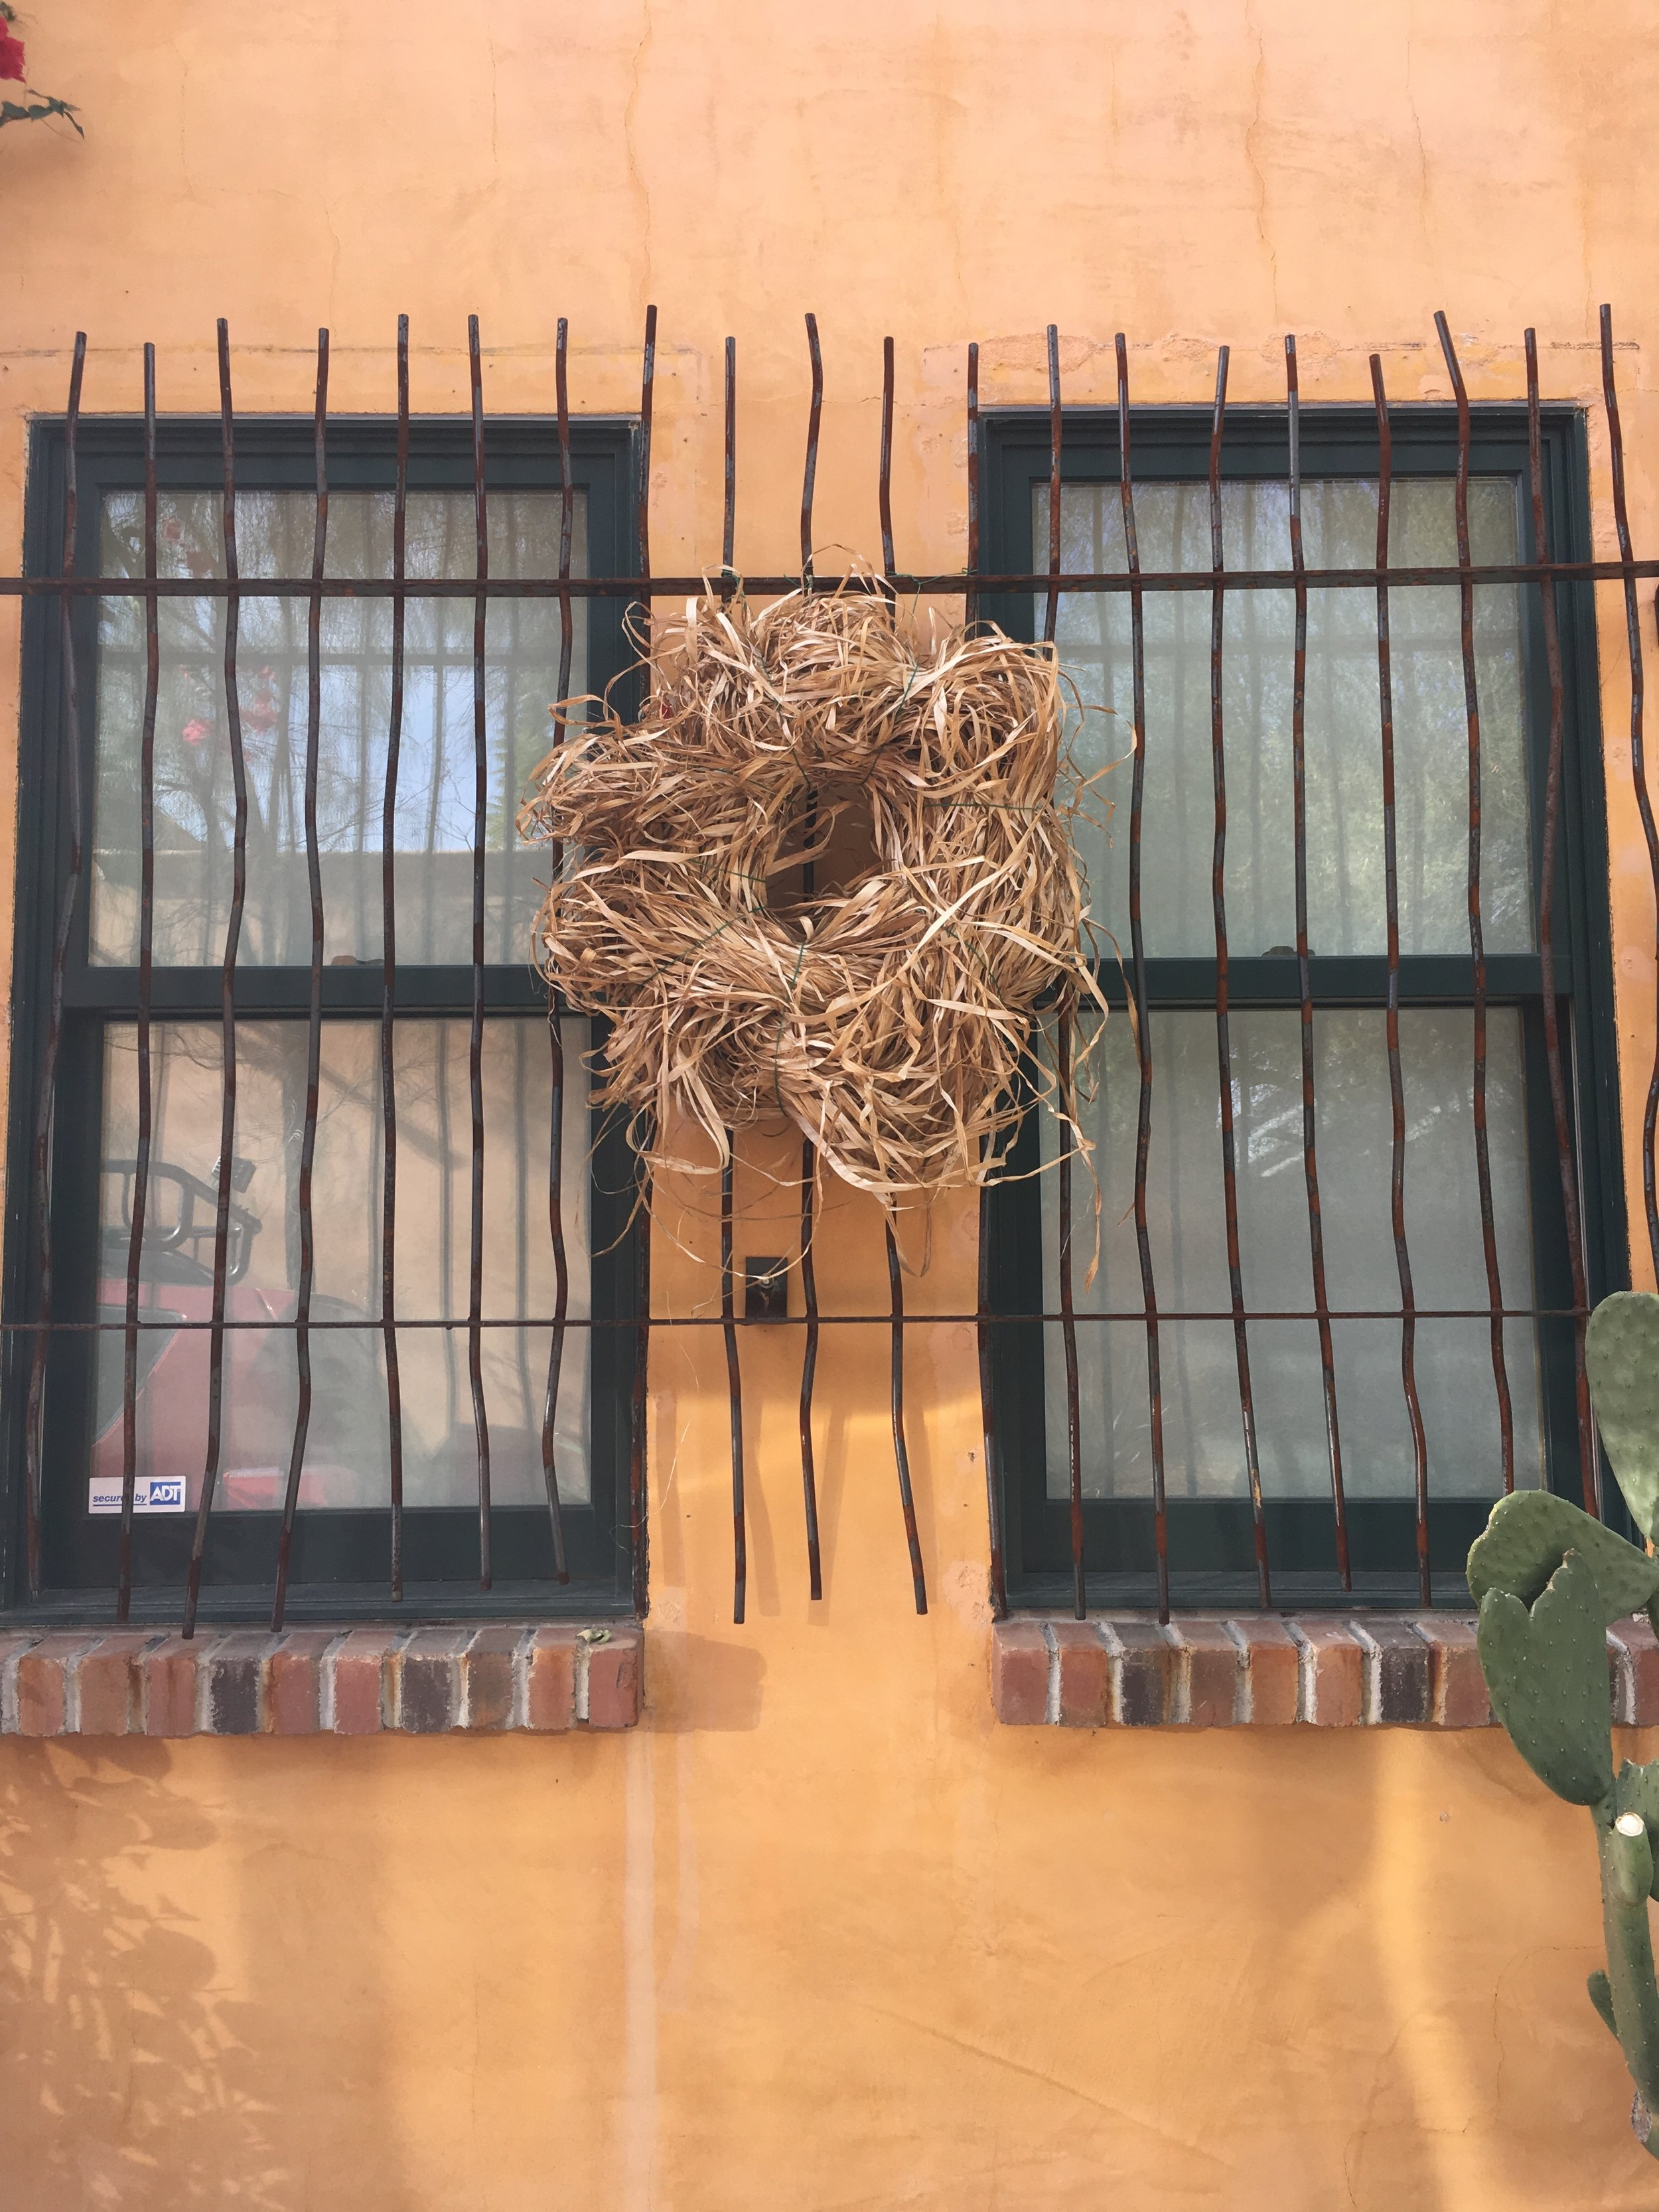 Love this wild looking wreath in Barrio Santa Rosa on the south side of downtown.